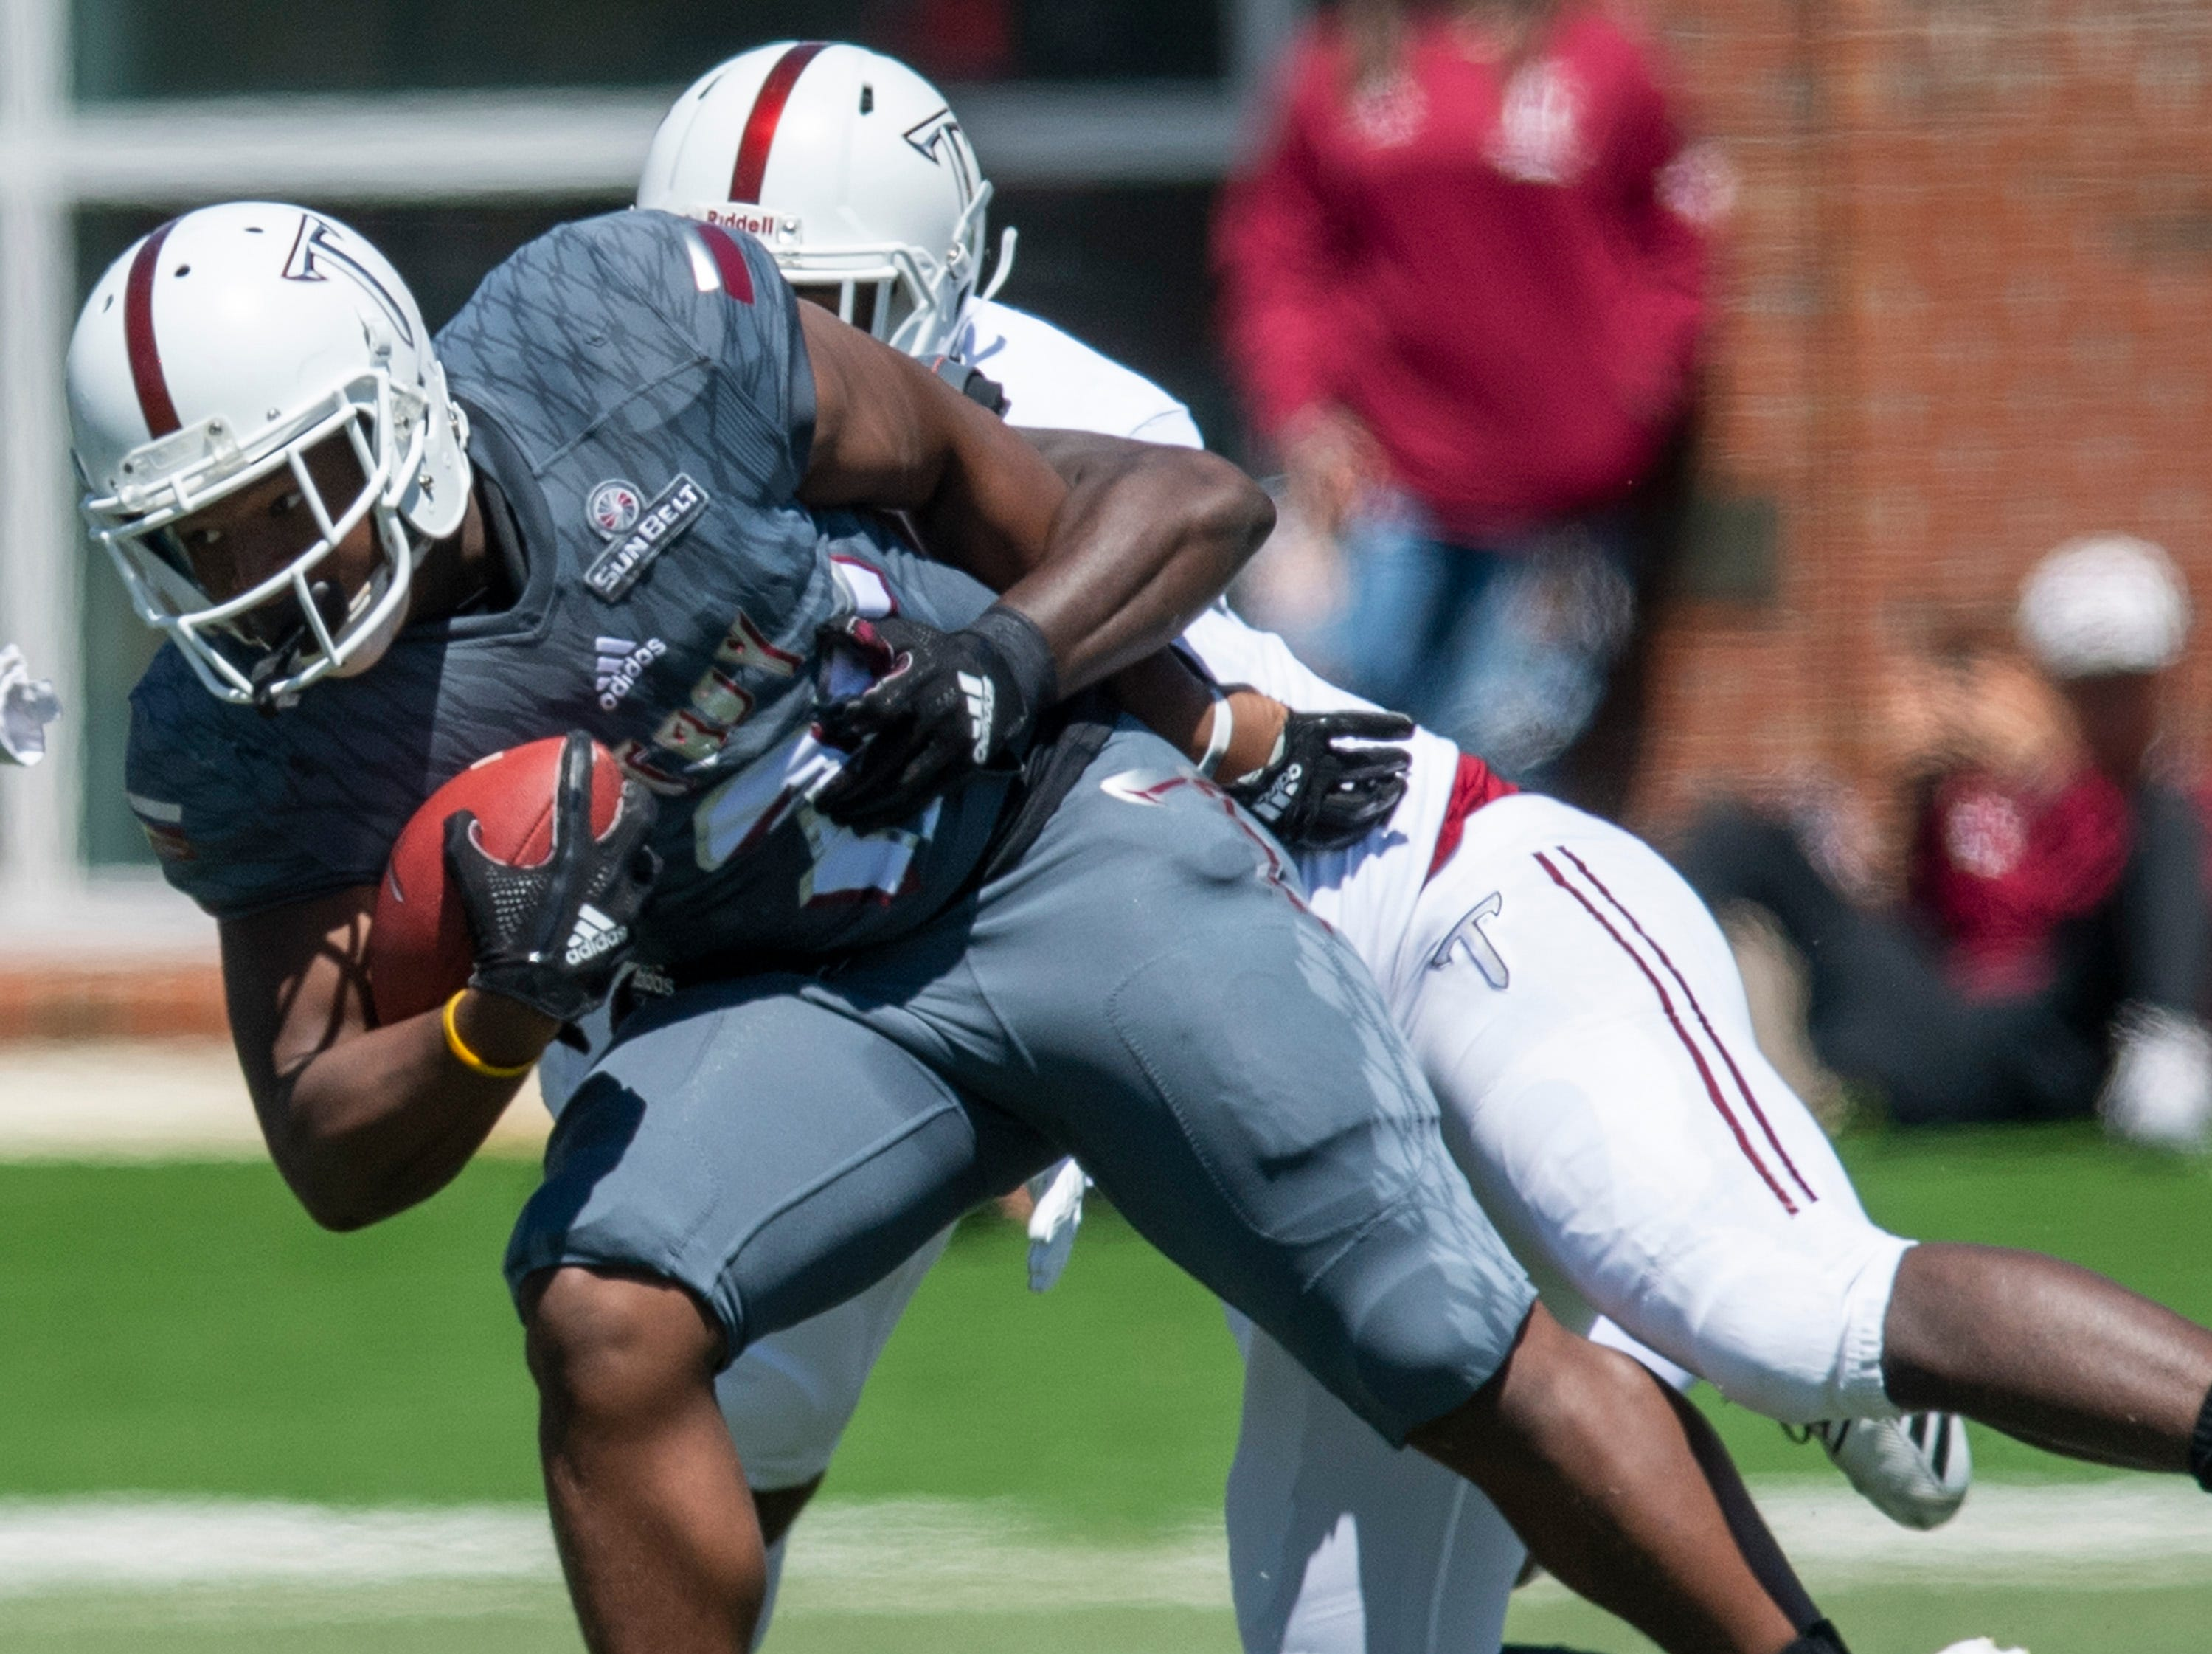 Troy running back Josh Mays (25) is stopped by linebacker Carlton Martial (38) during the Troy University T-Day spring scrimmage game in Troy, Ala., on Saturday April 20, 2019.